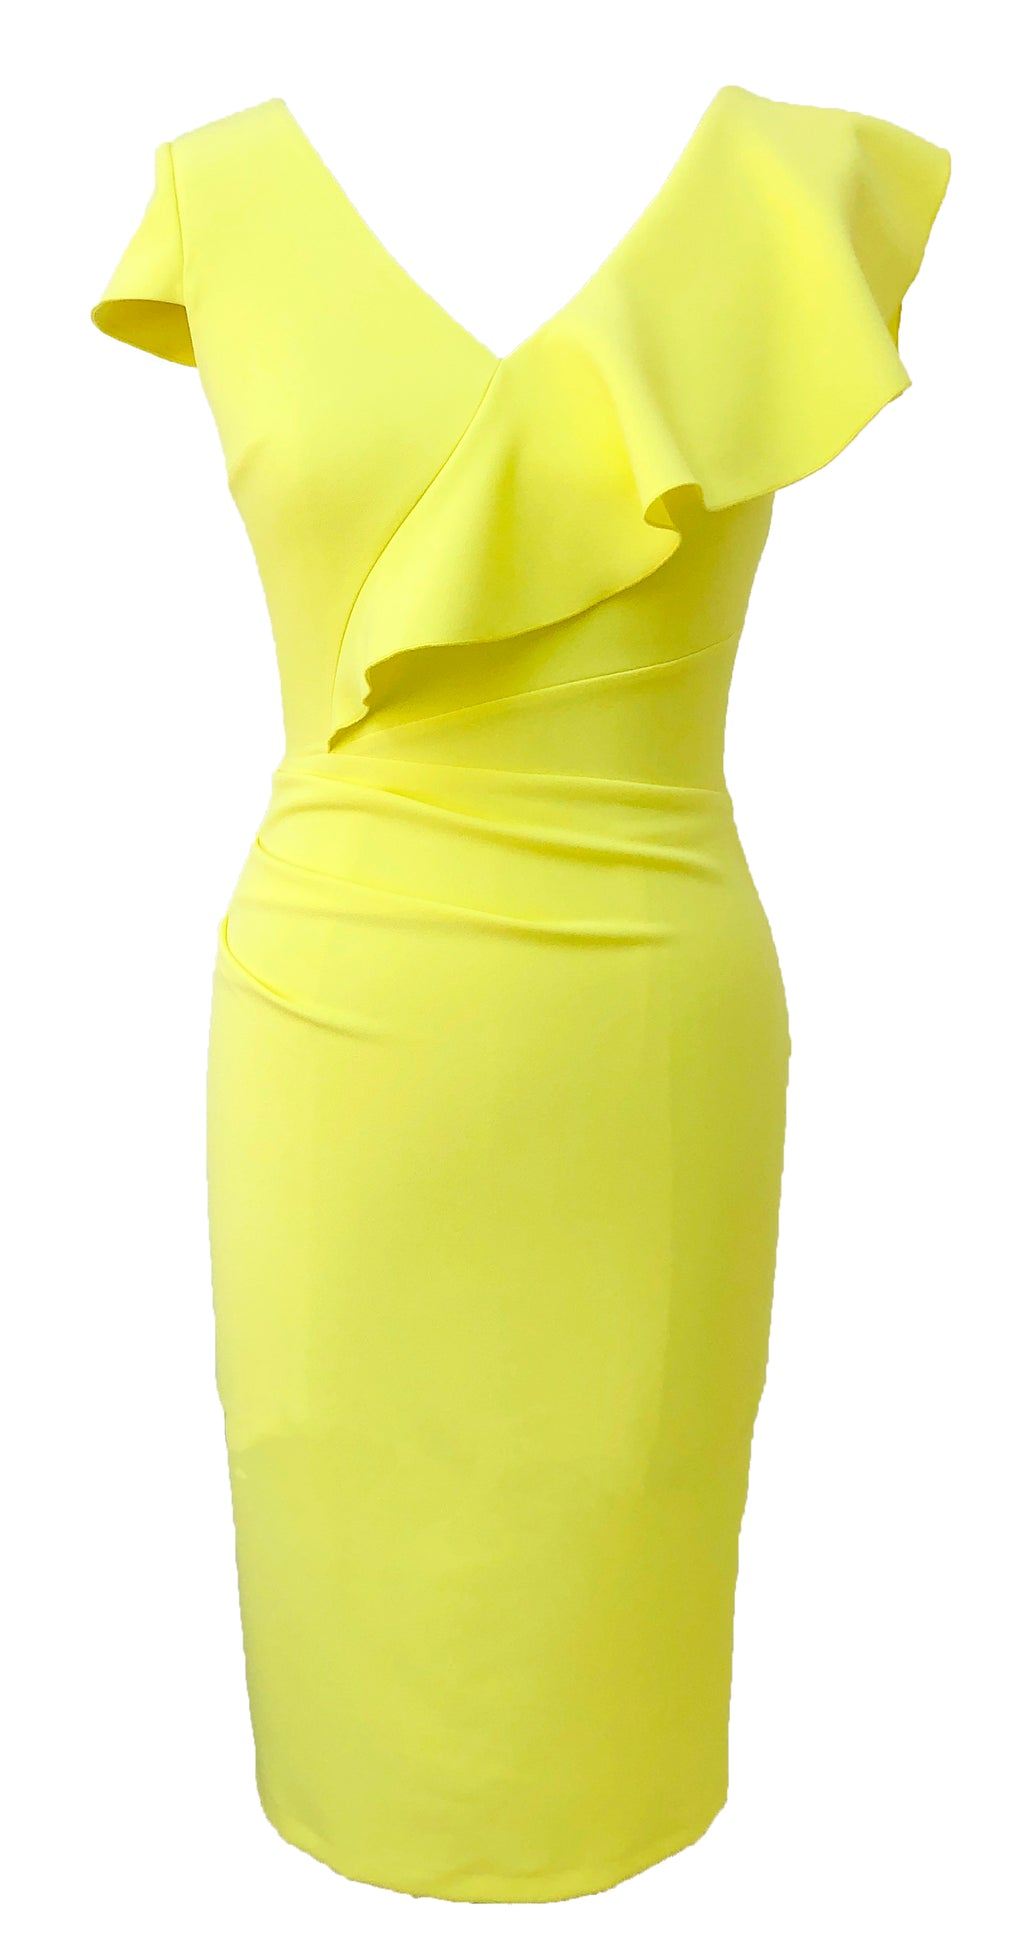 Arina Dress DRC354 Yellow Crepe